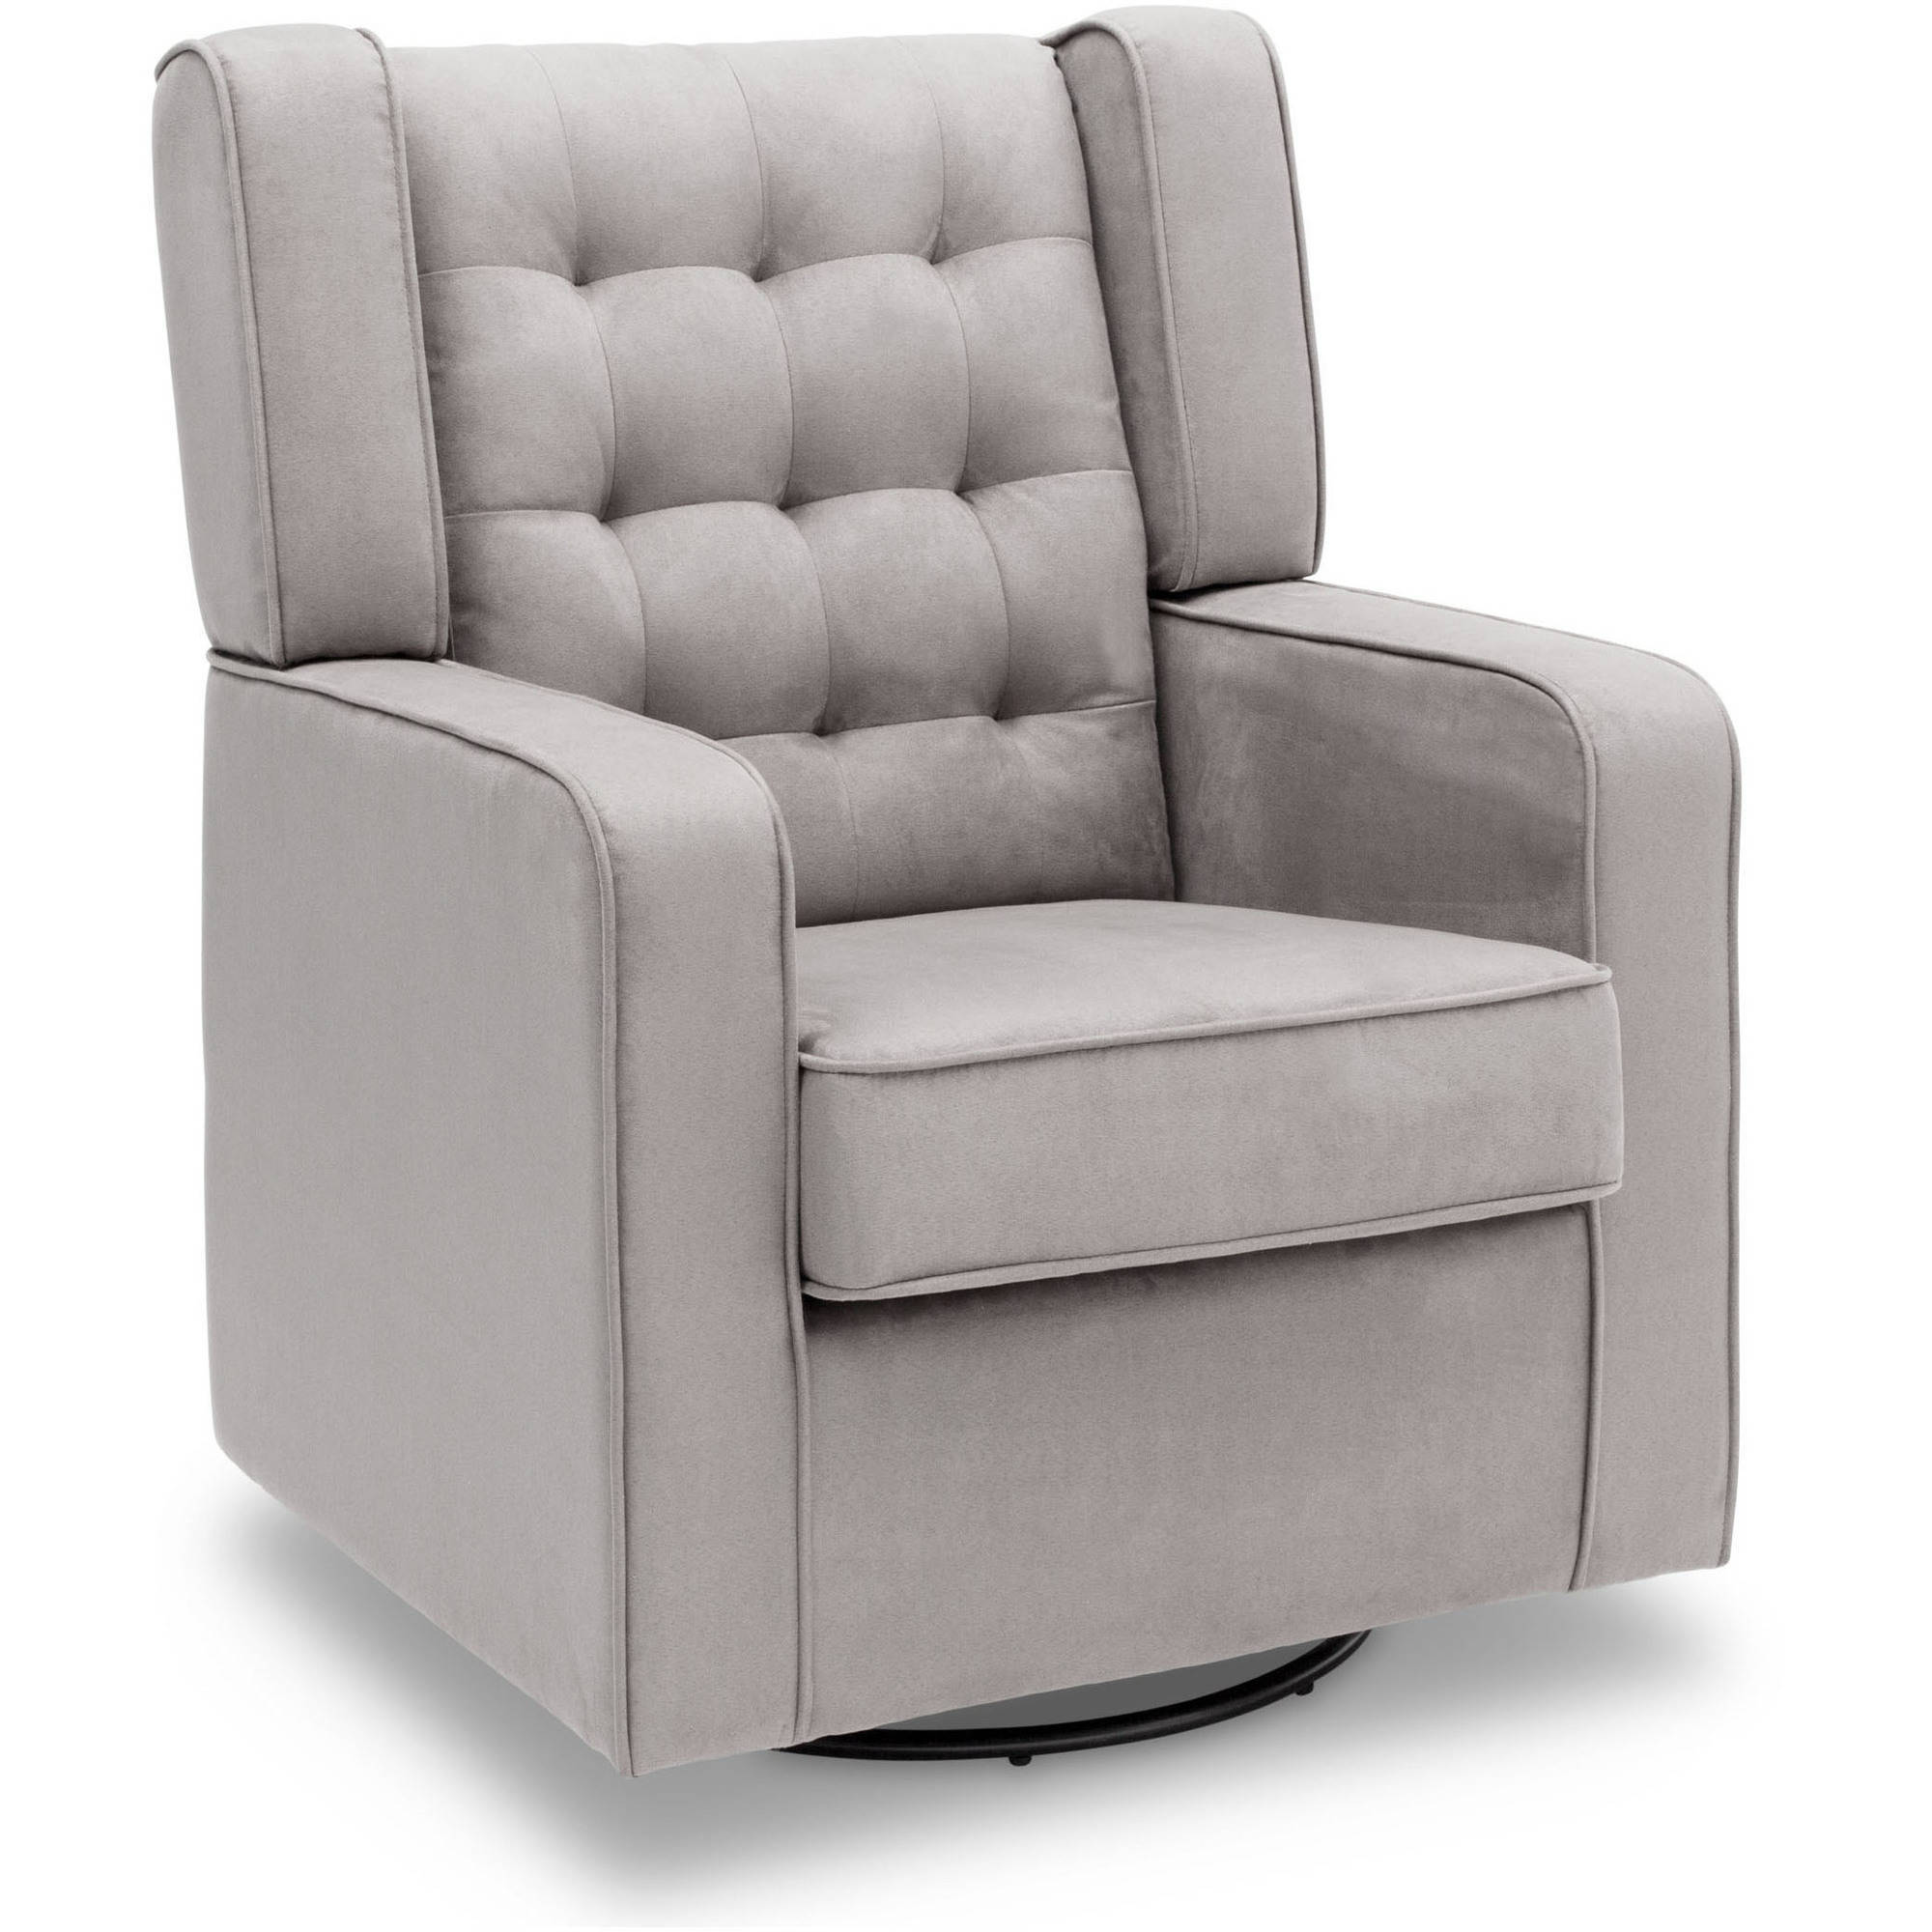 Delta Children Paris Upholstered Glider, Dove Gray